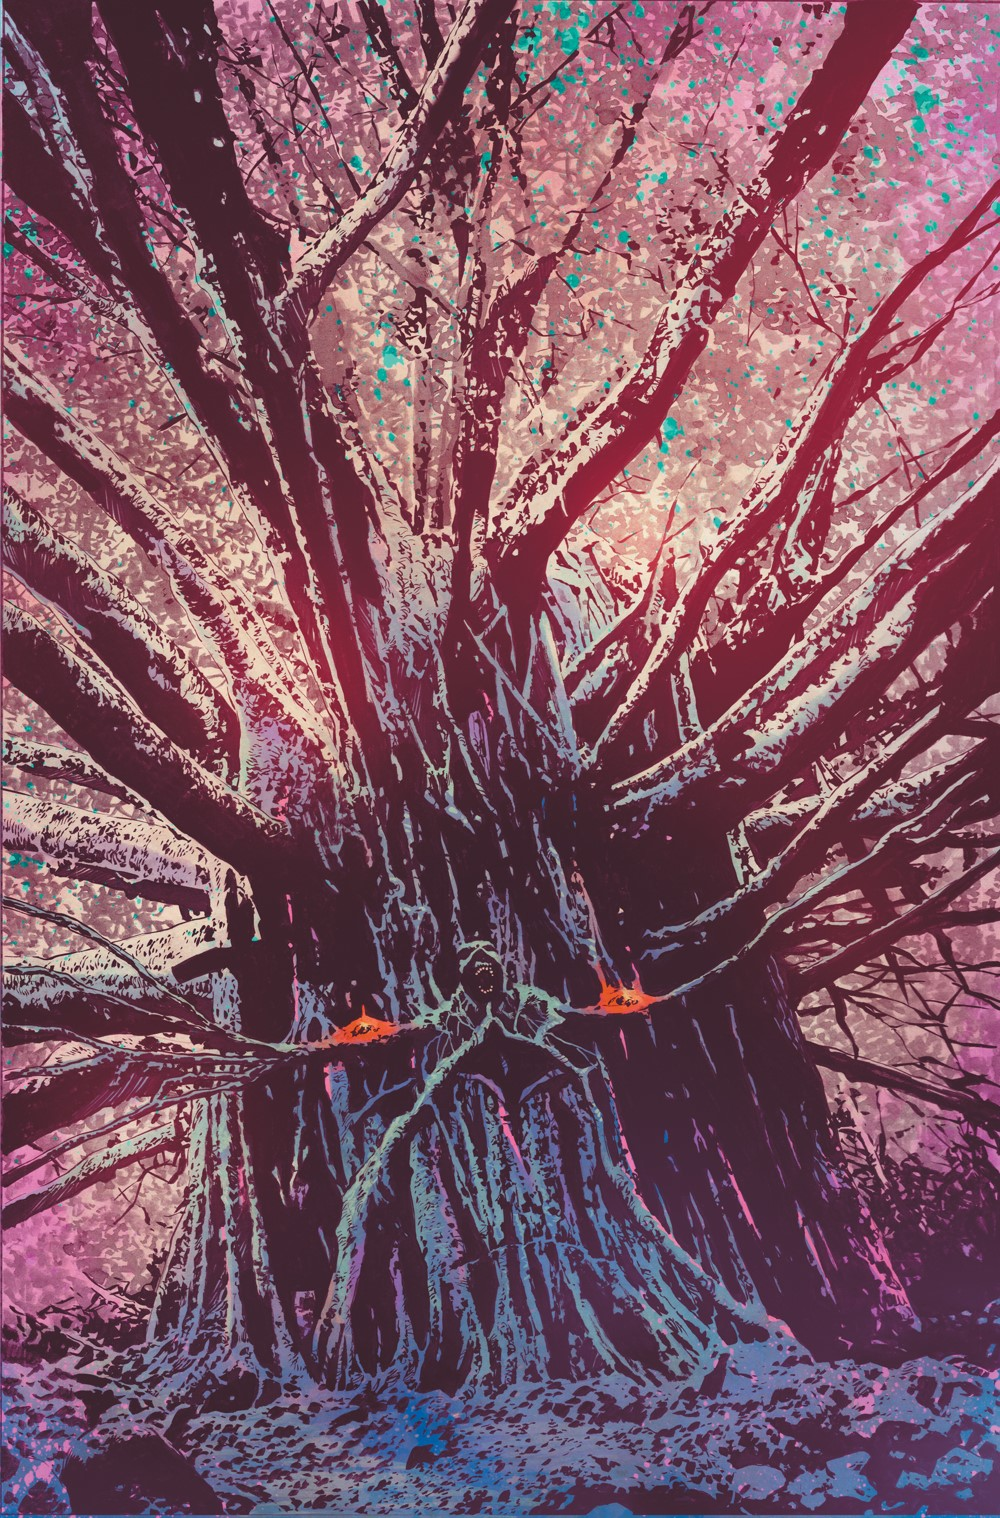 The-Swamp-Thing-8-Main-Cover DC Comics October 2021 Solicitations